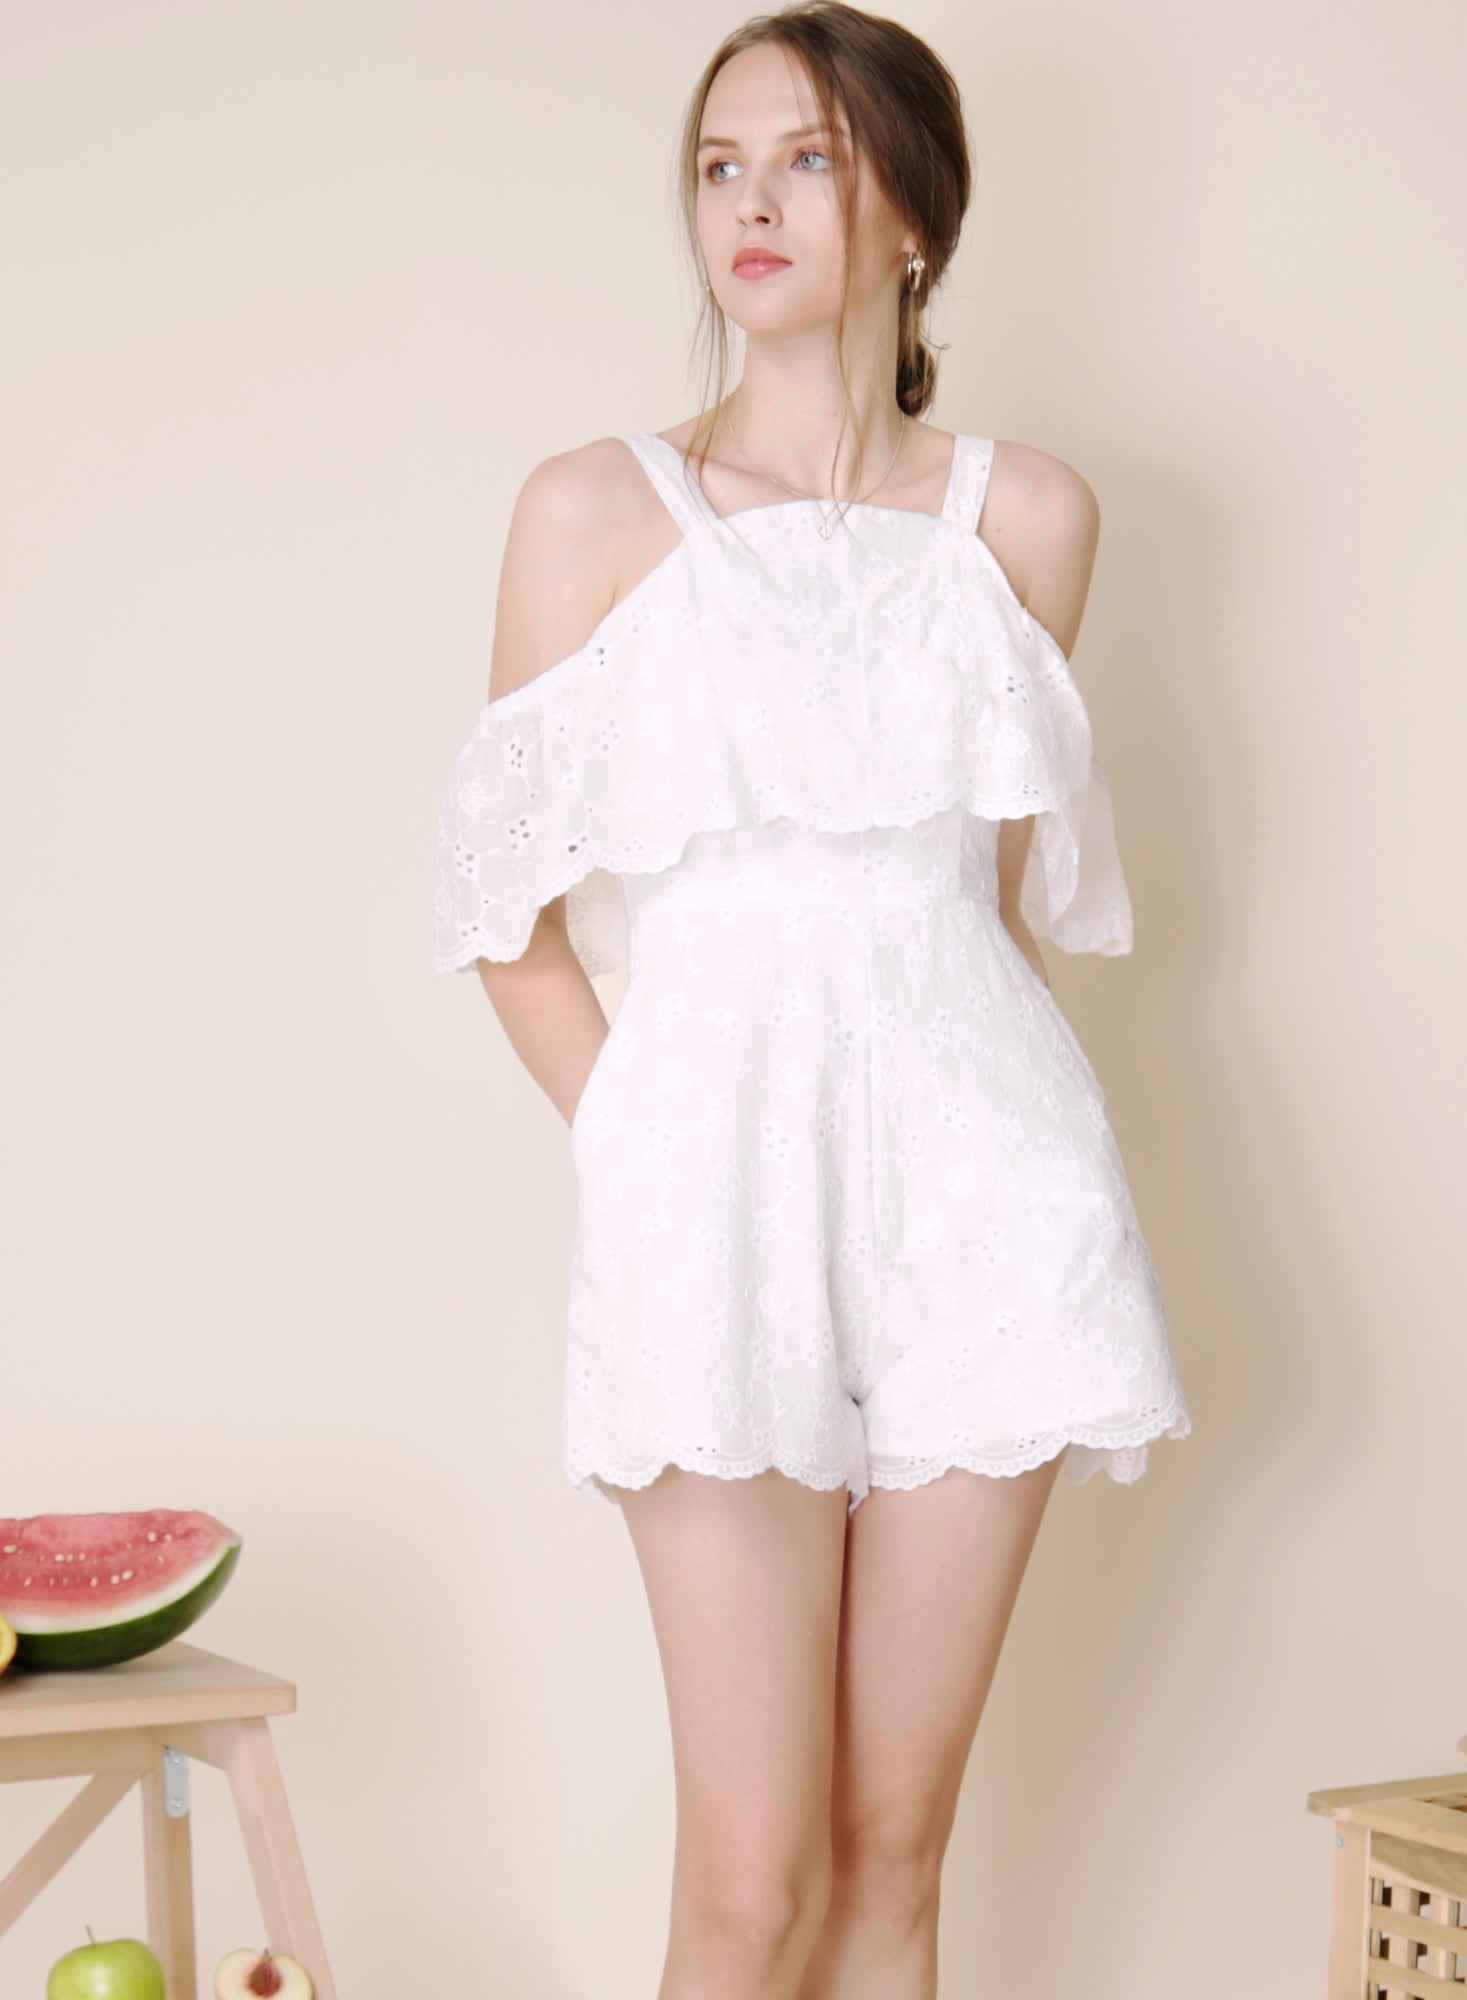 Imagine Cold Shoulder Eyelet Romper (White) at $ 41.50 only sold at And Well Dressed Online Fashion Store Singapore